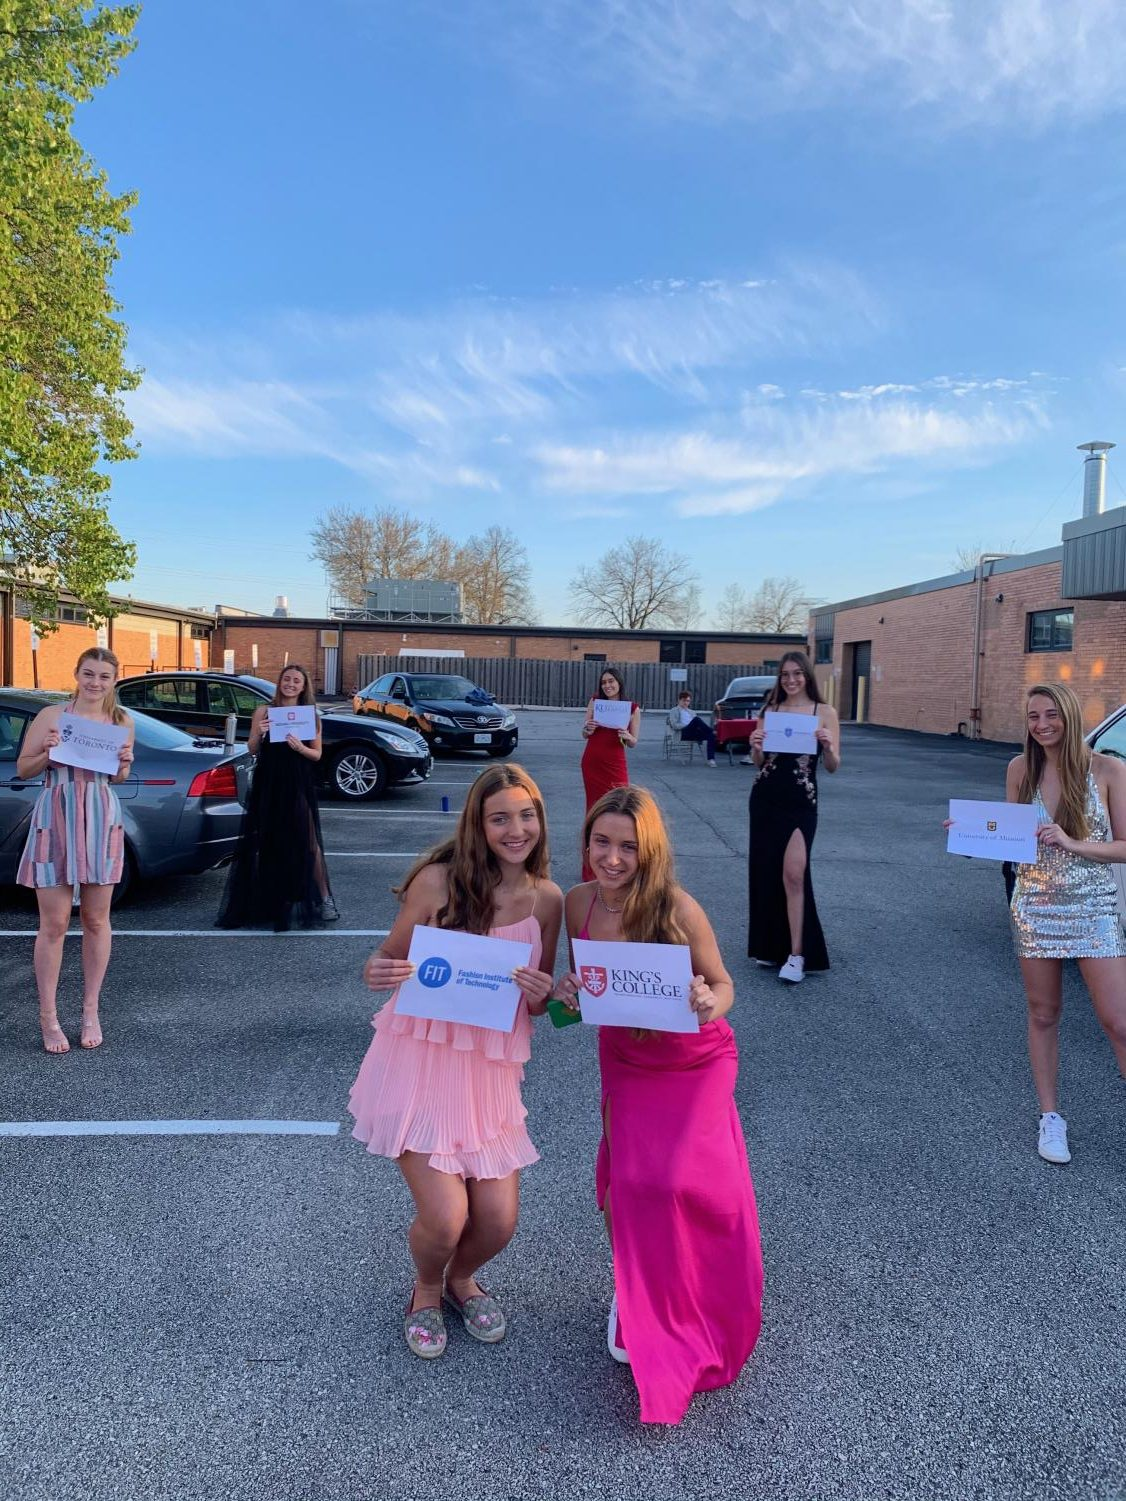 Seniors Mackenna Westerfield, Madison Westerfield, Sophia Chelist, Michelle Korenfeld, Hannah Berry,  Lindsey Ormont and Sophie Lowis on the Parkway Central parking lot on prom night. Since prom was cancelled a group of seniors got dressed up and celebrated prom together.